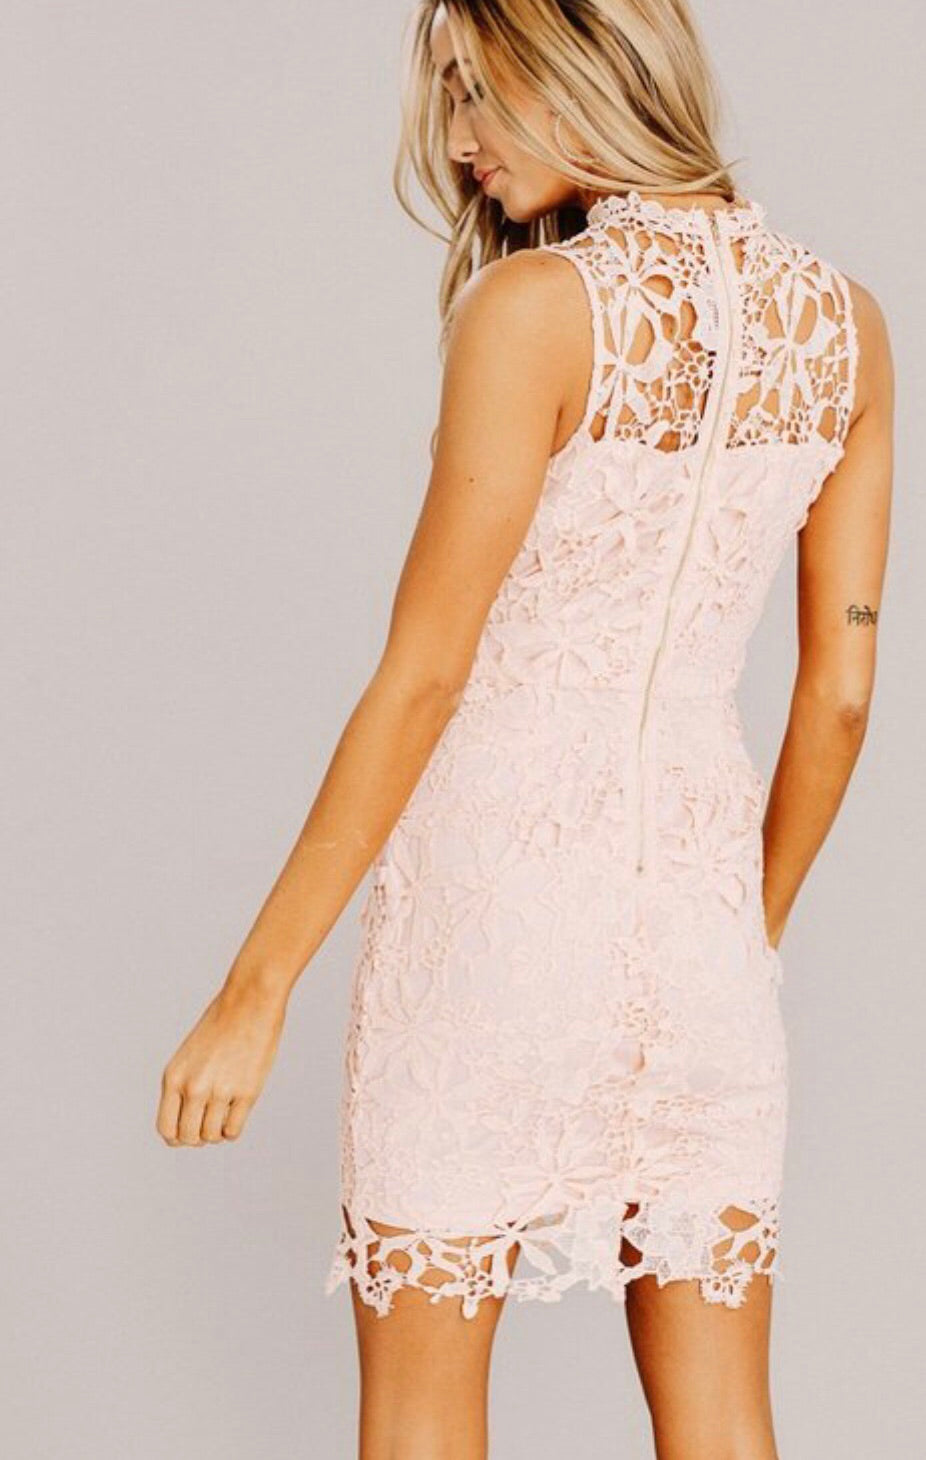 Lace & Flowers Dress